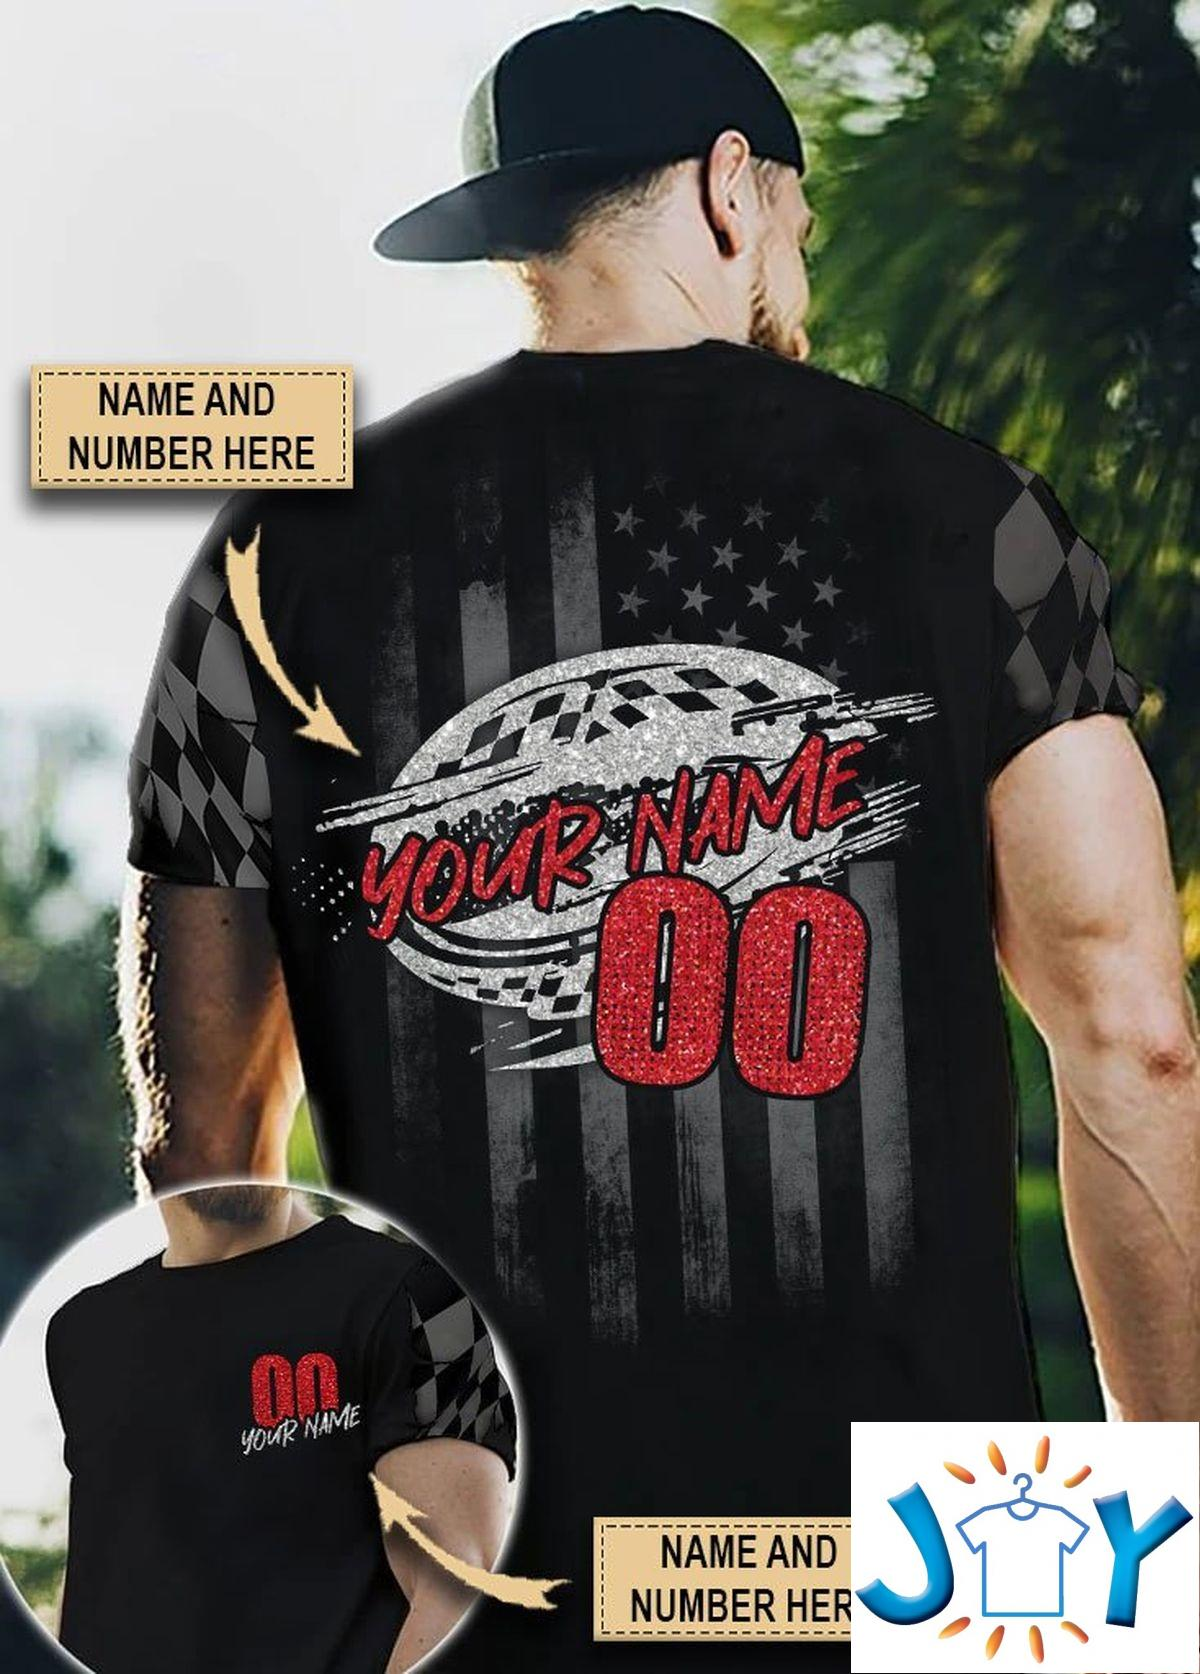 Personalized Name And Number Racing Cyclone 3D All Over Print T-shirt, Hoodie